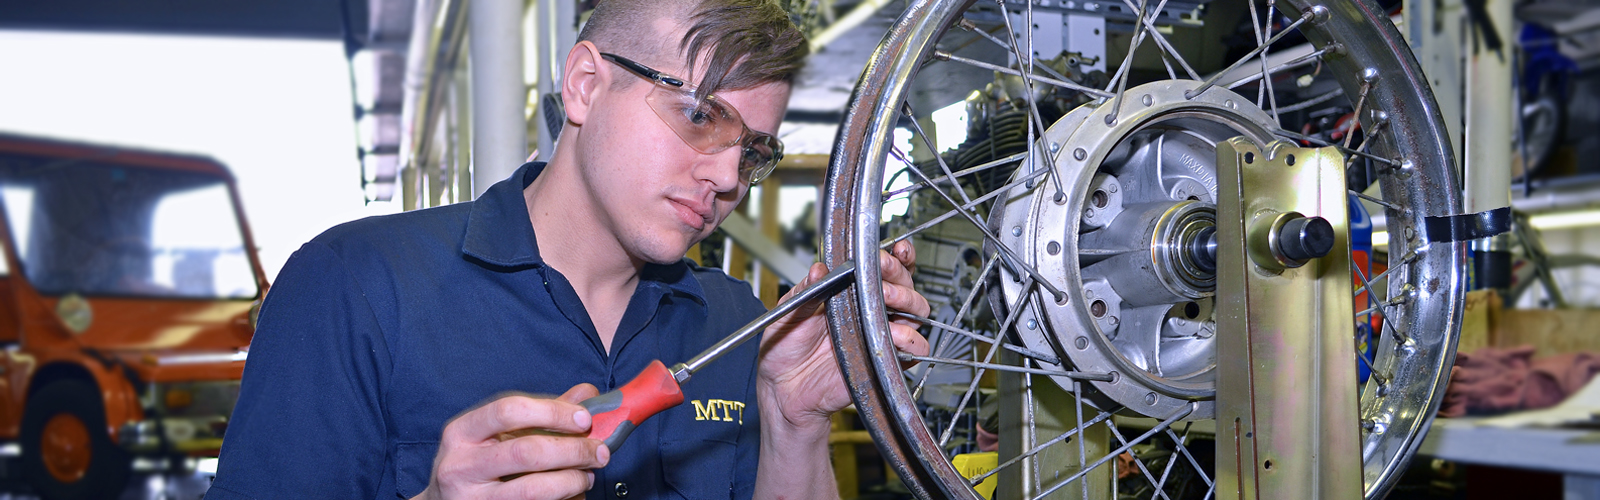 Young man repairing motorcycle wheel in MTTI's shop.